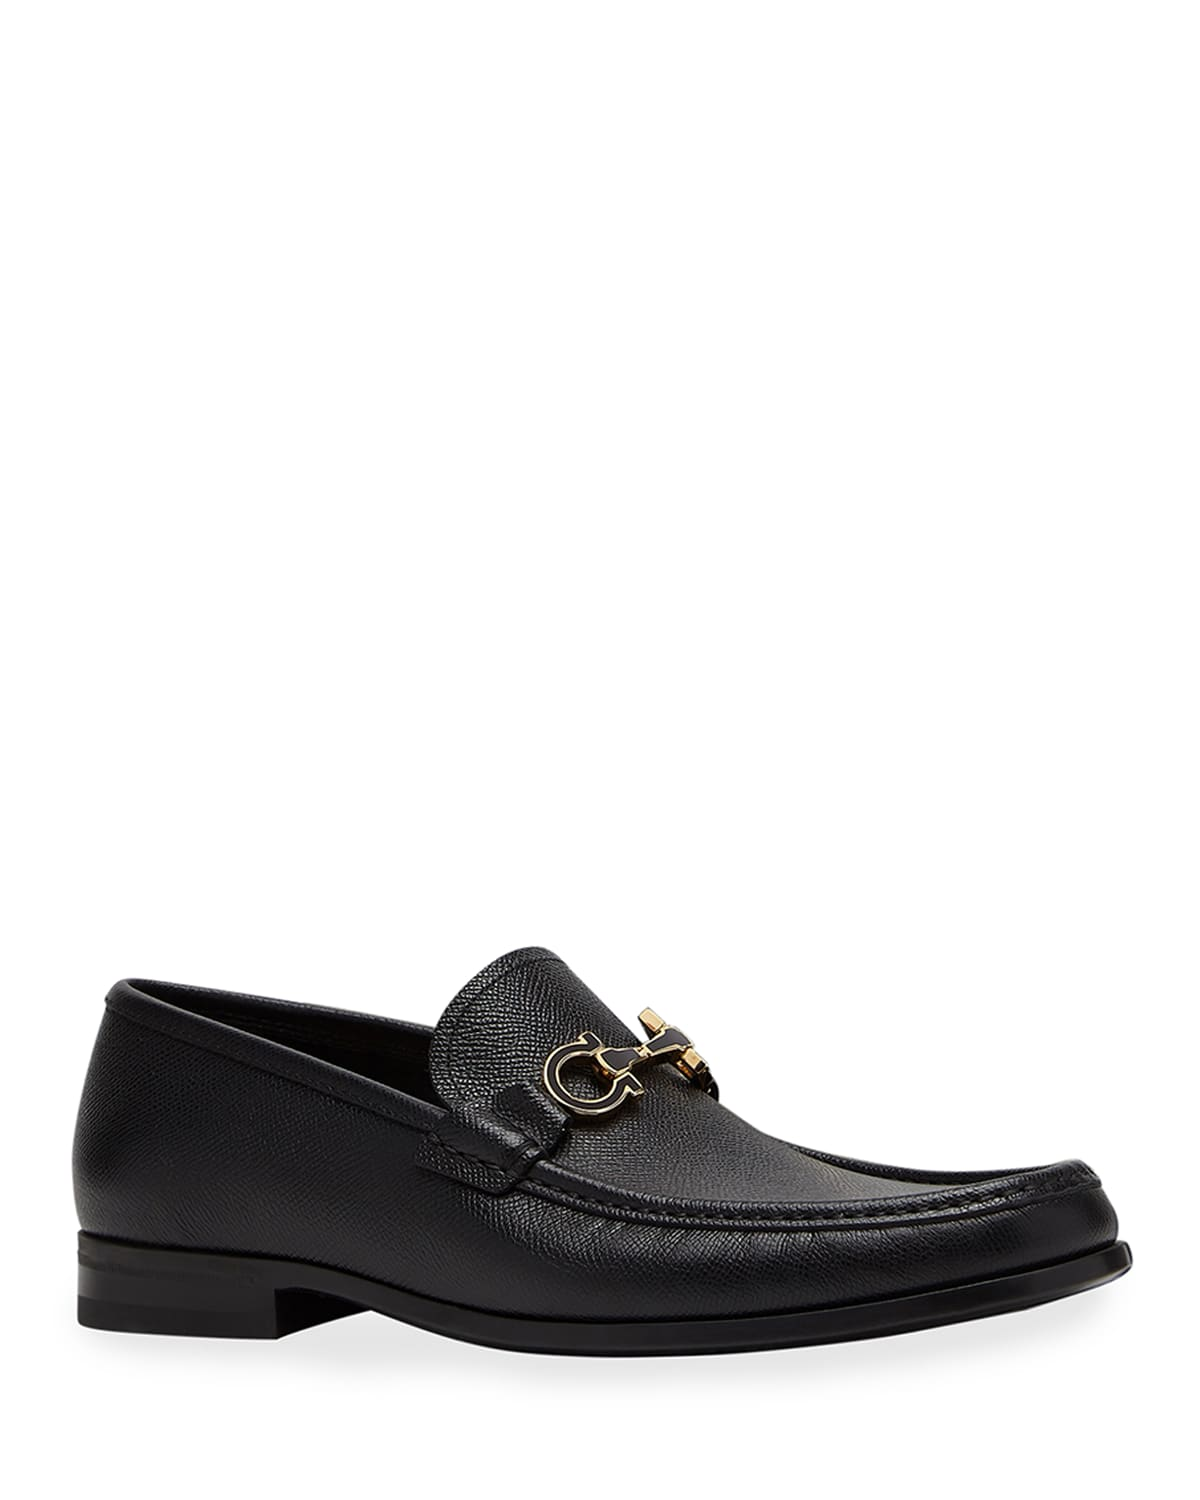 Men's Chris Textured Leather Gancini Loafers